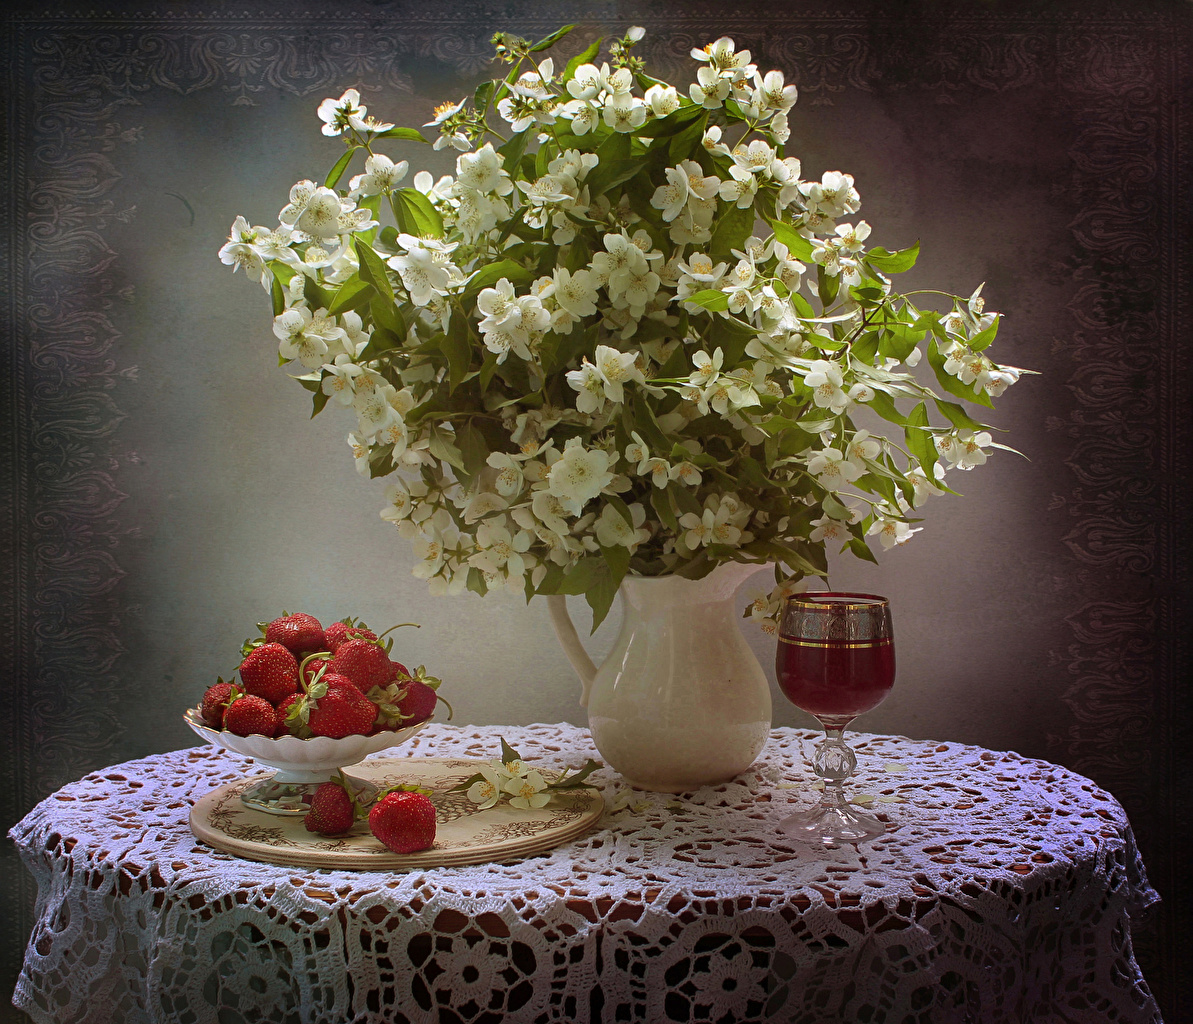 Images windy flower Strawberry Vase Food Table Branches Stemware Still-life Flowering trees Wind Flowers